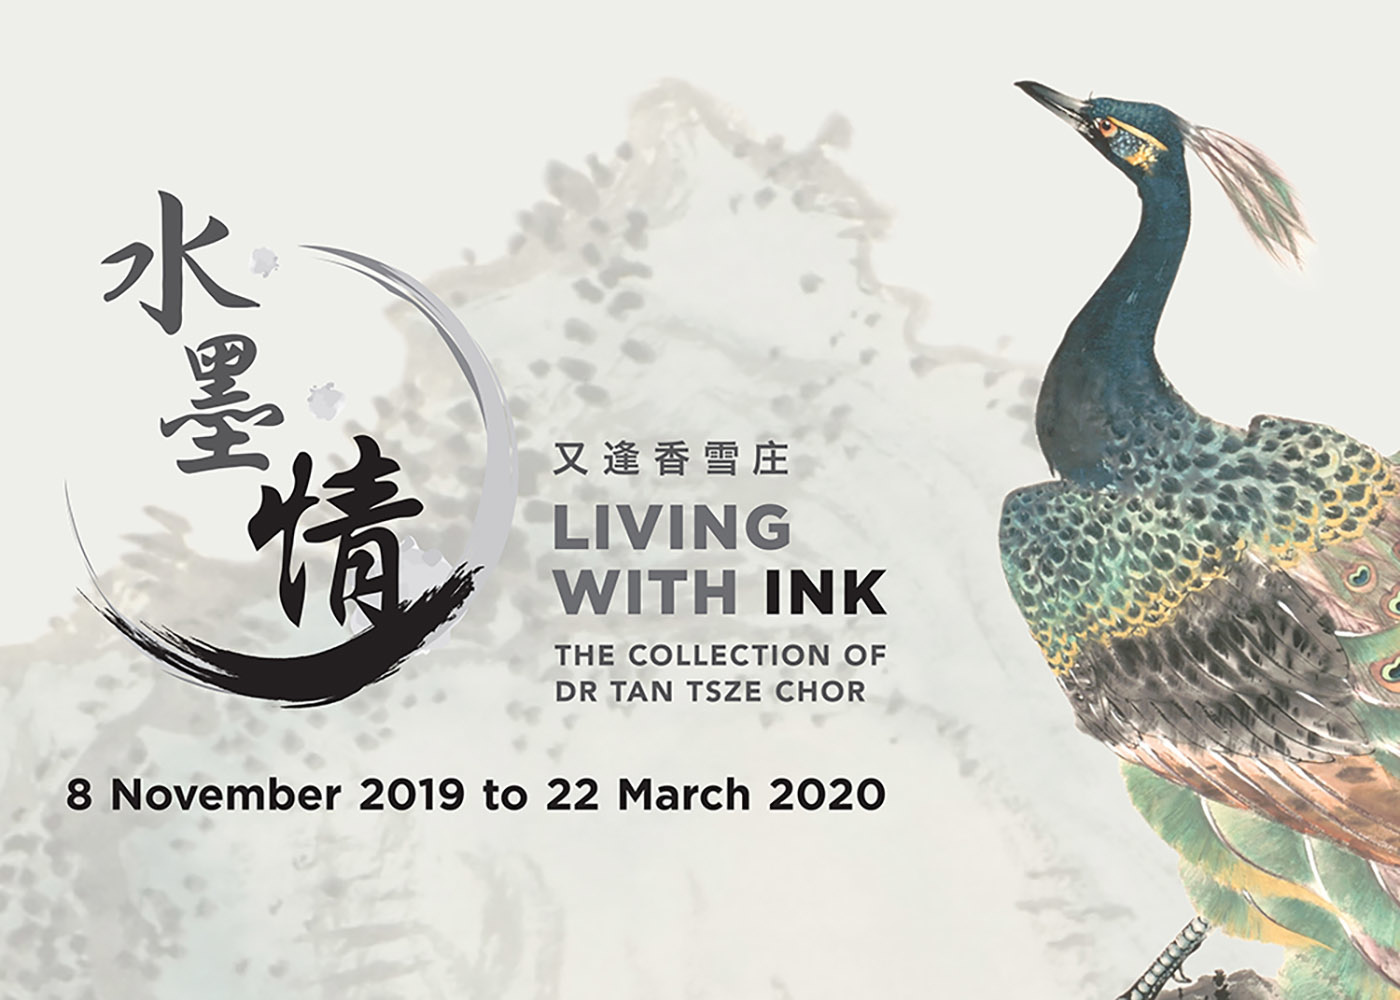 Living With Ink: The Collection of Dr Tan Tsze Chor